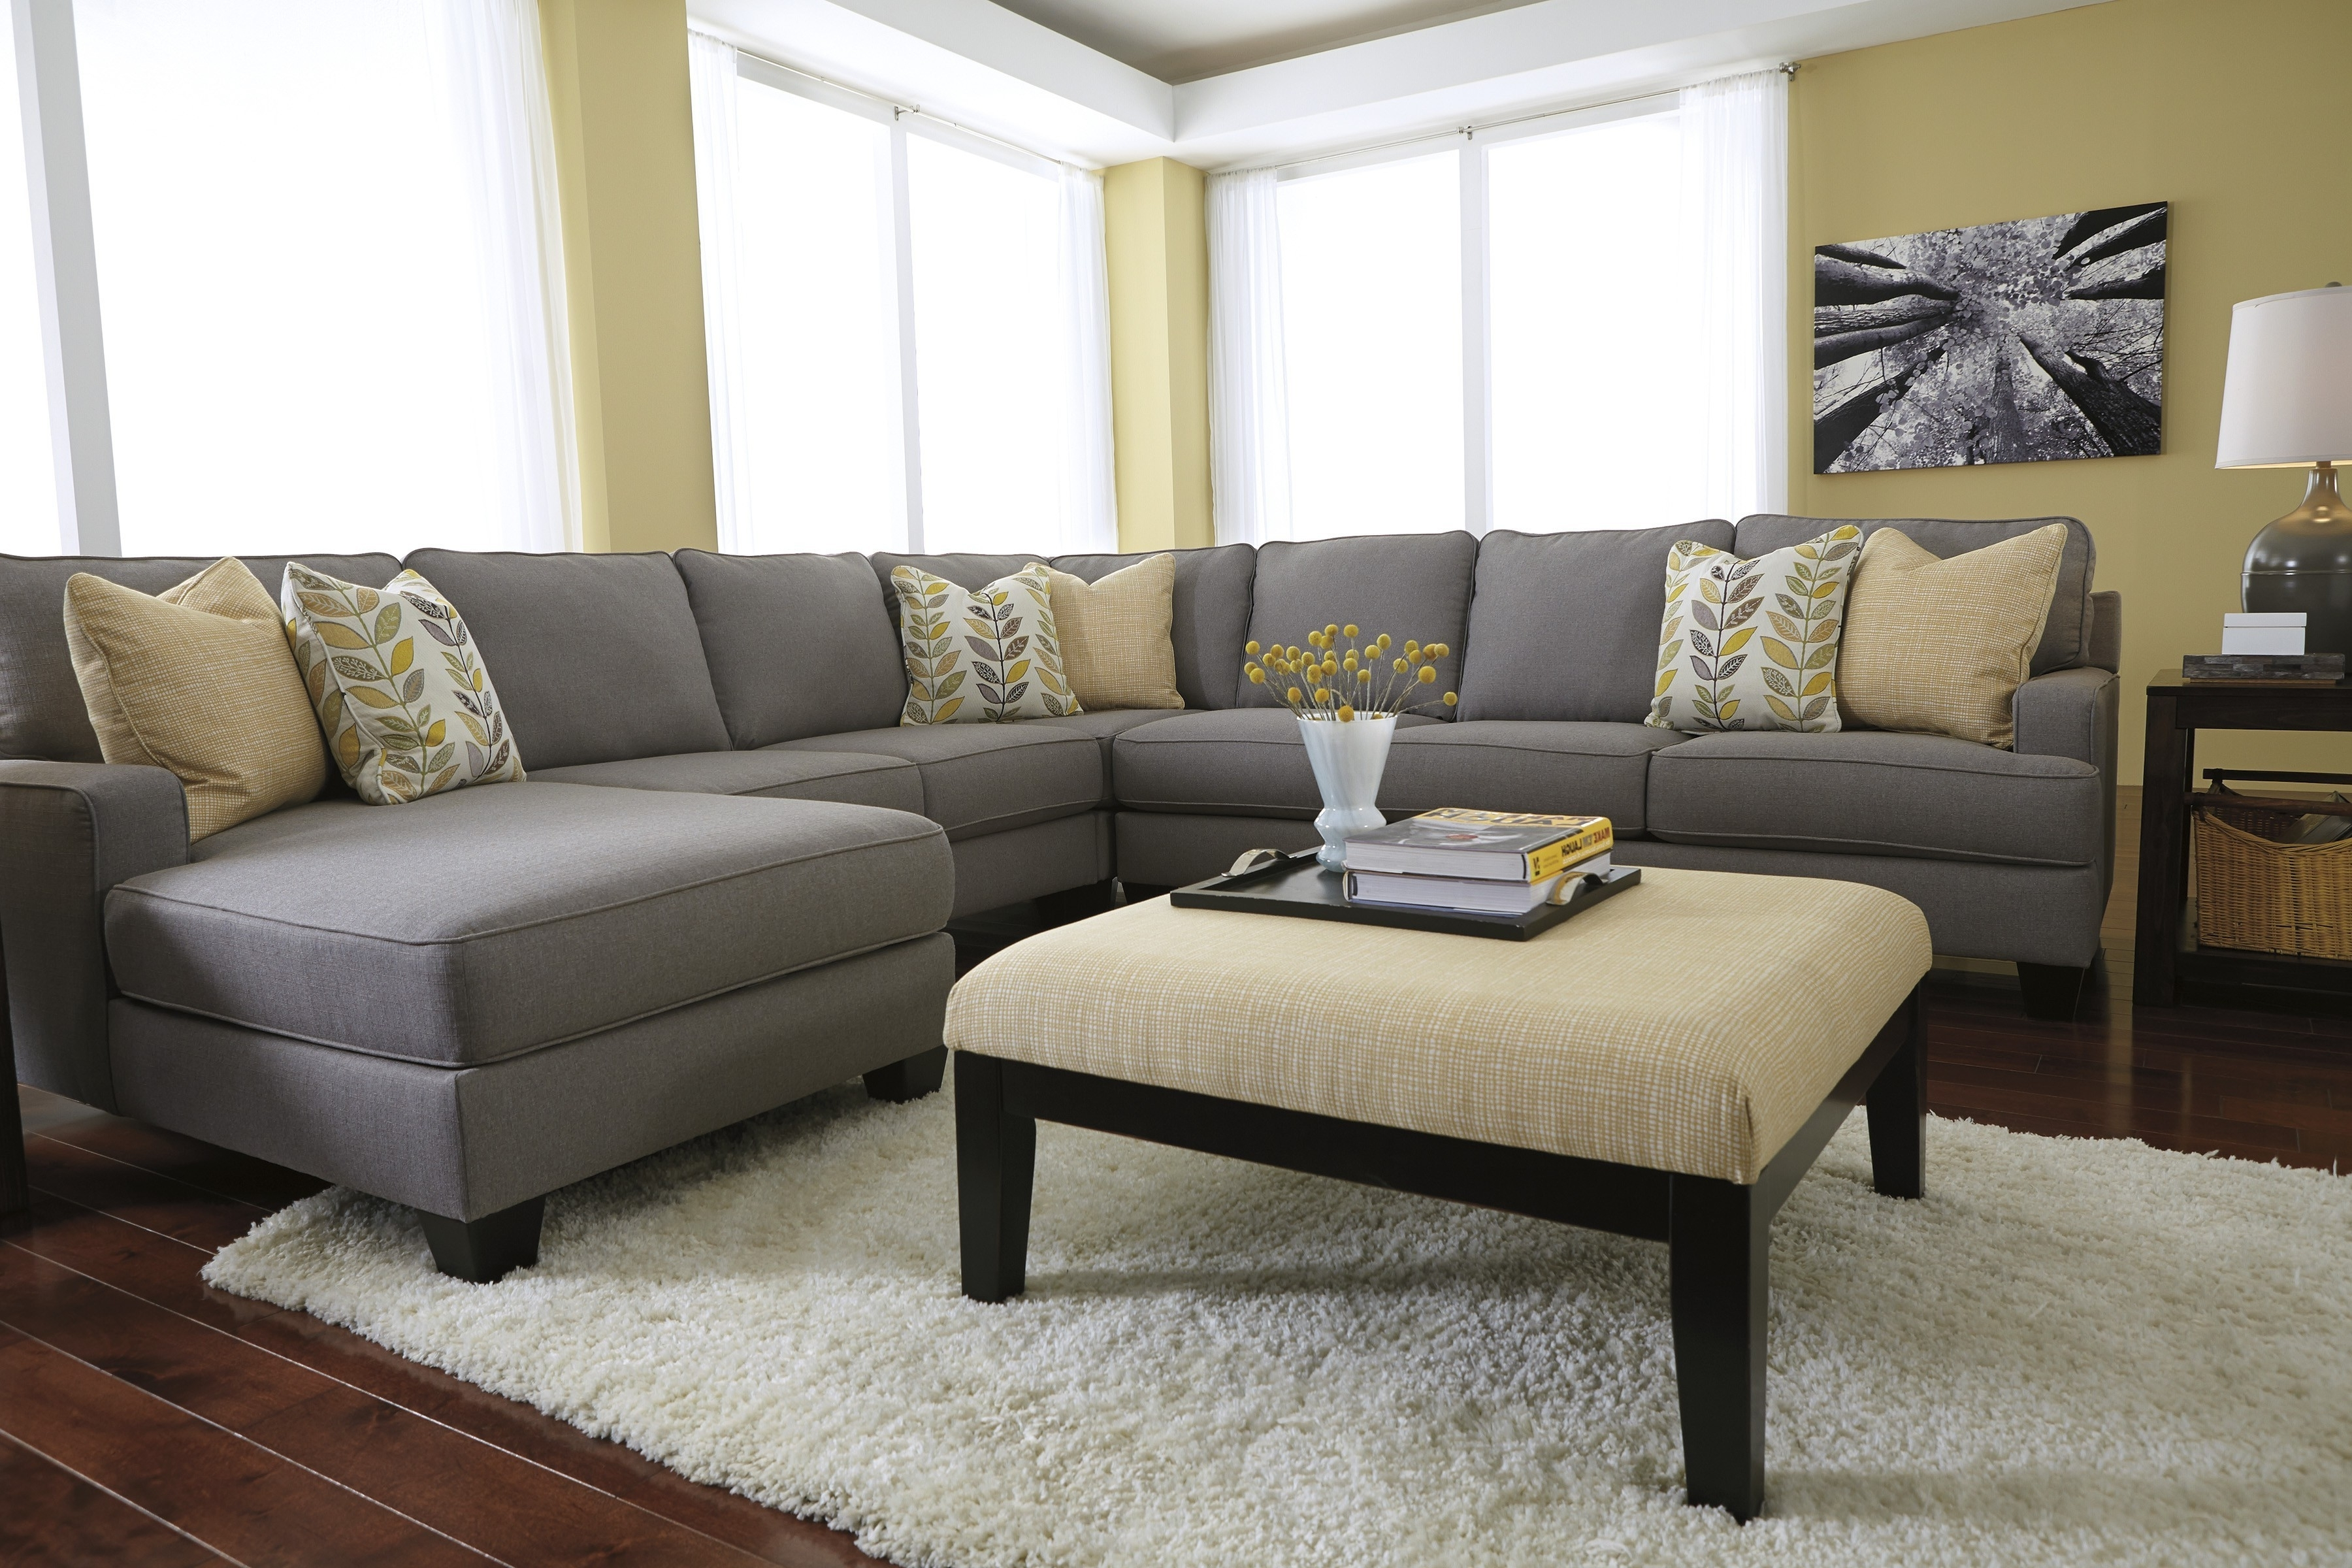 Most Recent Sectional Sofas Decorating Regarding Home Design : Extraordinary Best Modern Fabric Sectional Sofas (View 7 of 20)